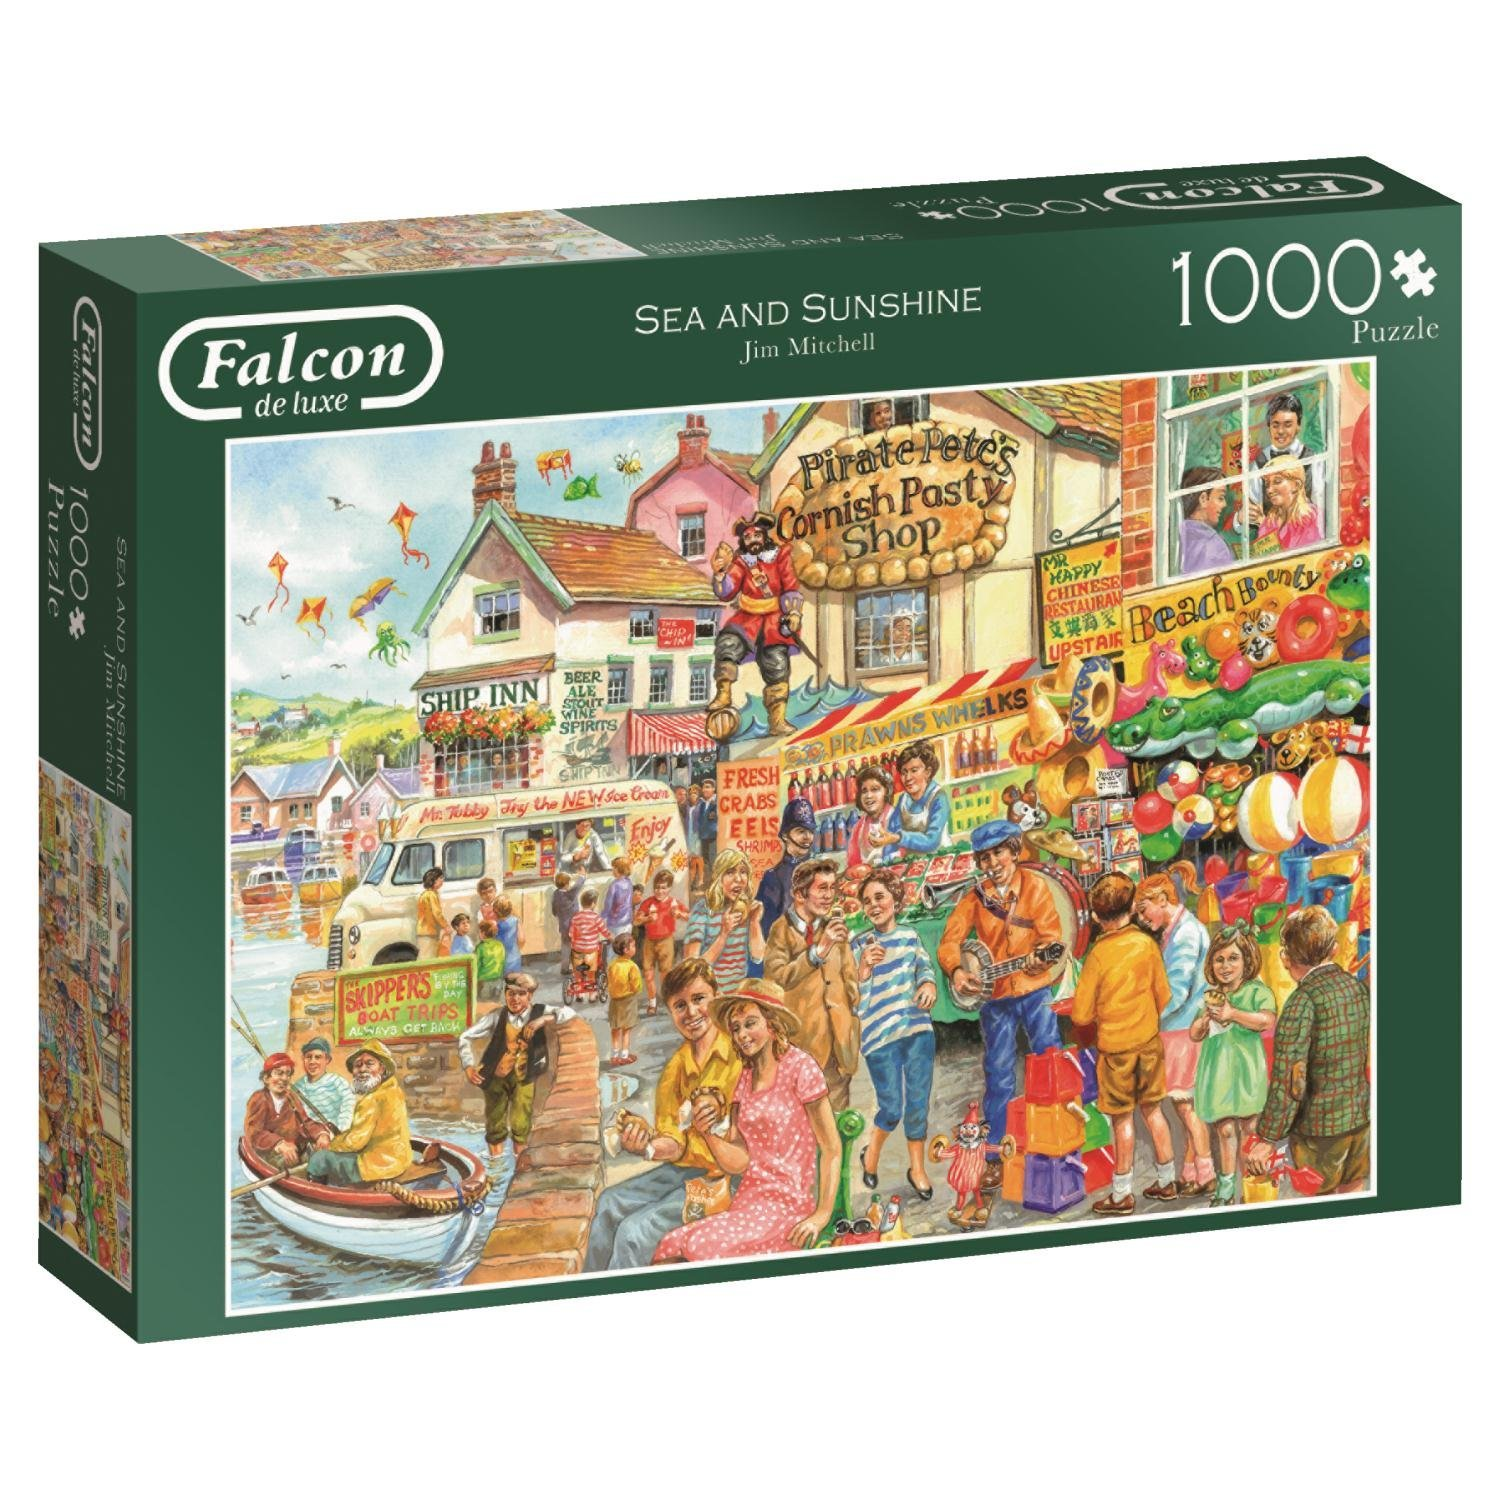 Falcon, Sea And Sunshine, 1000pc Jumbo Jigsaw Puzzle